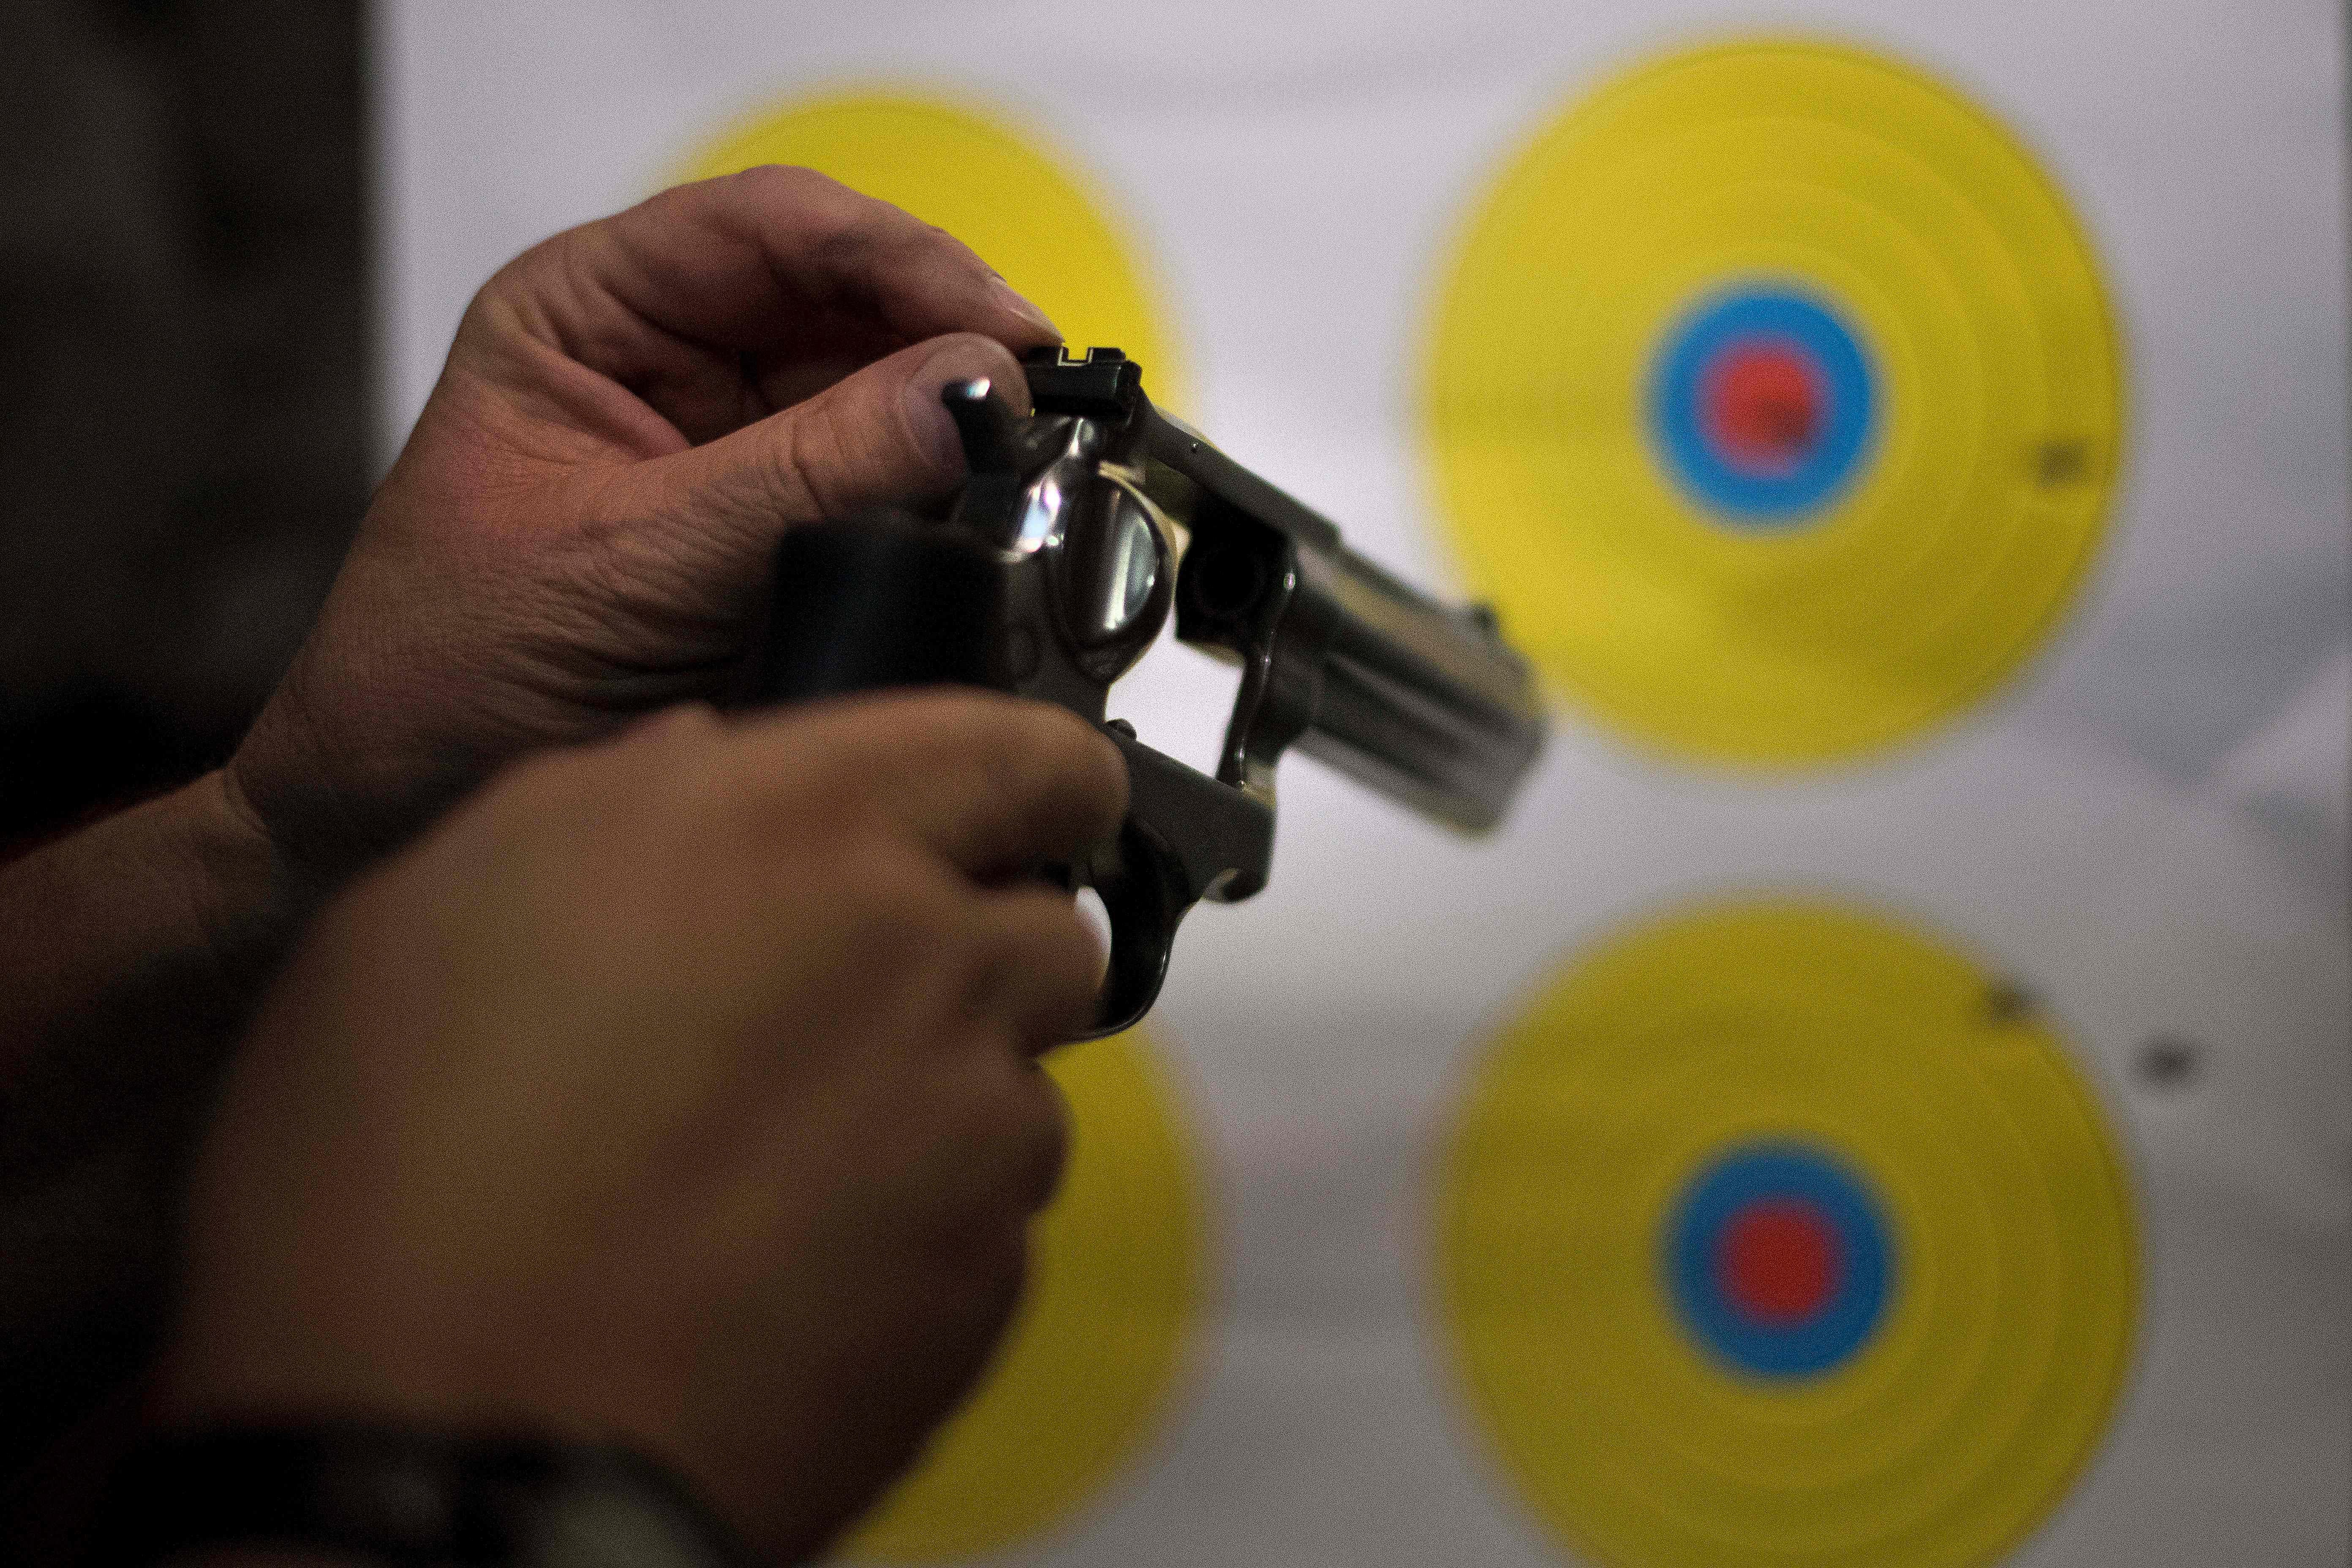 A man adjusts the sights on his .357 revolver at the Lynchburg Arms & Indoor Shooting Range in Lynchburg, Virginia, on October 20, 2017.         Virginia residents go to the polls on November 7 to vote for governor and members of the state's legislature. Following a mass shooting in Las Vegas that killed 58 people and wounded nearly 500 earlier this month, gun control has become a key issue in the state's 2017 elections. The NRA has spent more than $750,000 in support of Republican gubernatorial candidate Ed Gillespie, whom the organization awarded an 'A' rating 'for his strong support of the Second Amendment' to the US Constitution, which guarantees the right to bear arms.          / AFP PHOTO / JIM WATSON        (Photo credit should read JIM WATSON/AFP/Getty Images)